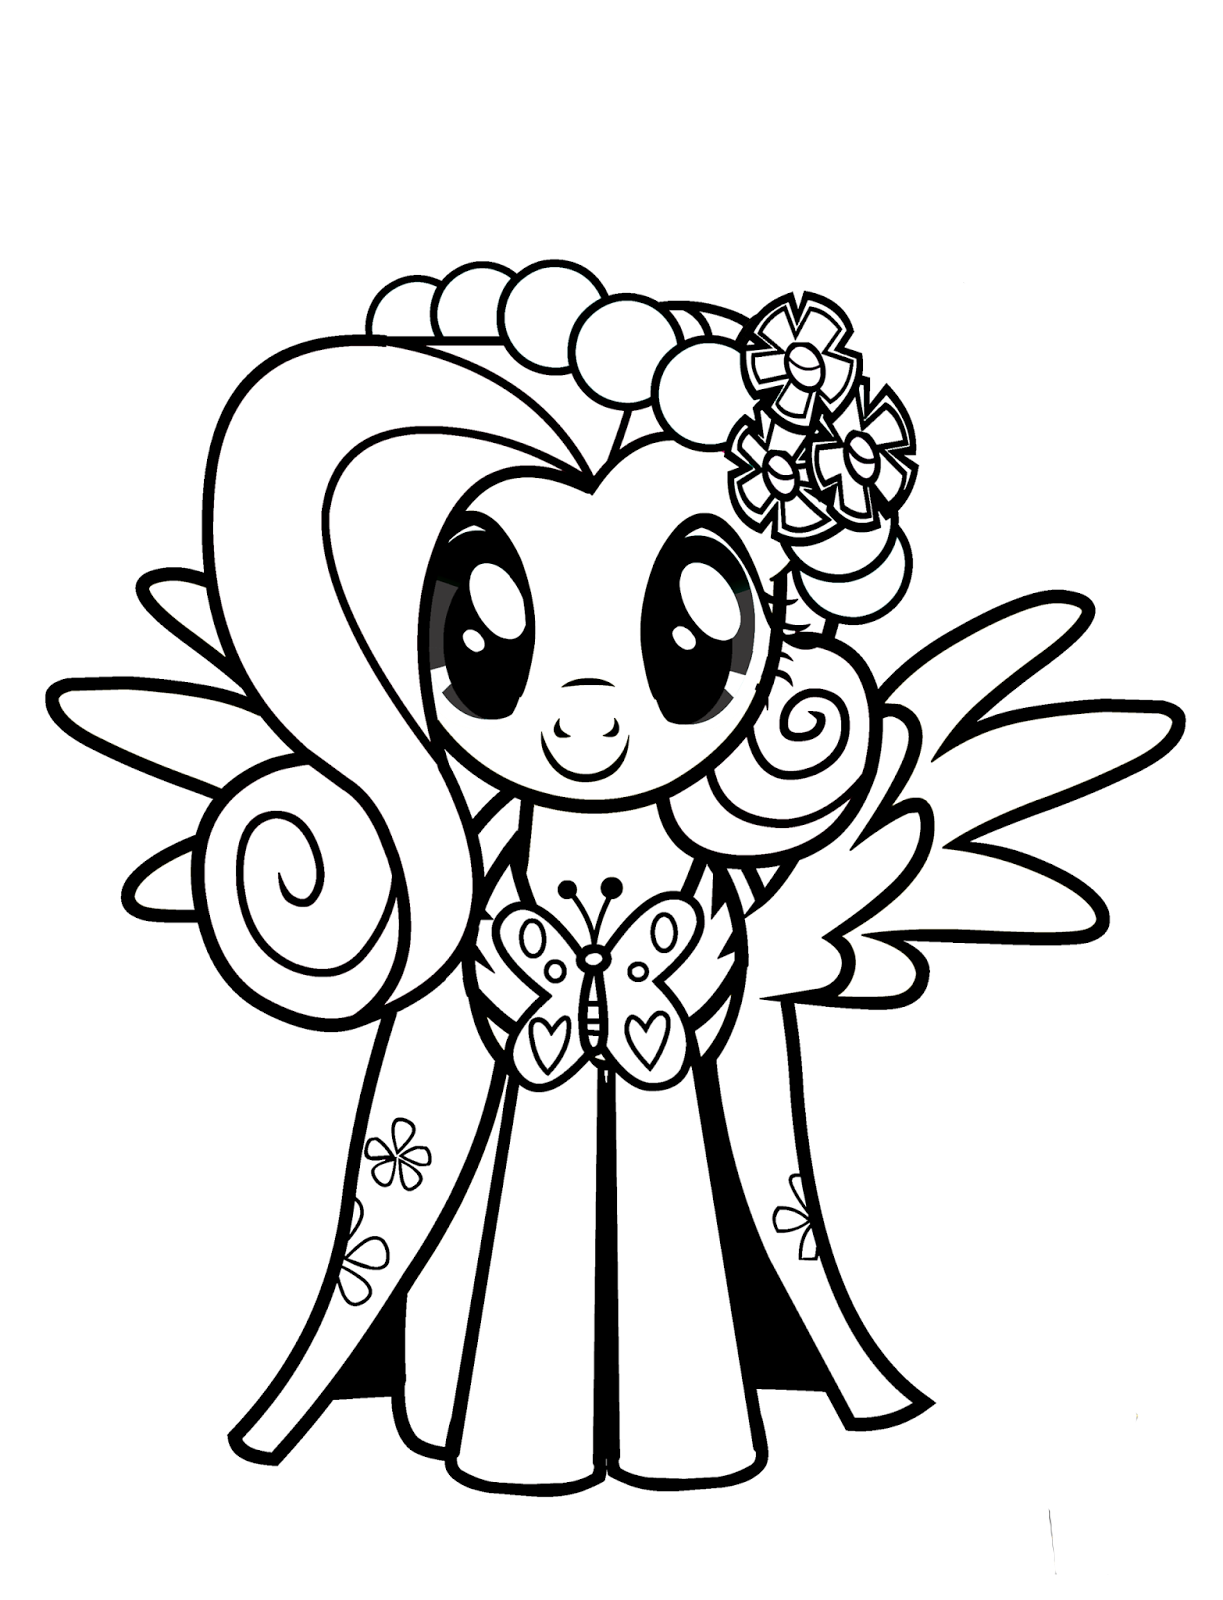 my little pony color sheet my little pony fluttershy coloring pages minister coloring sheet little color pony my